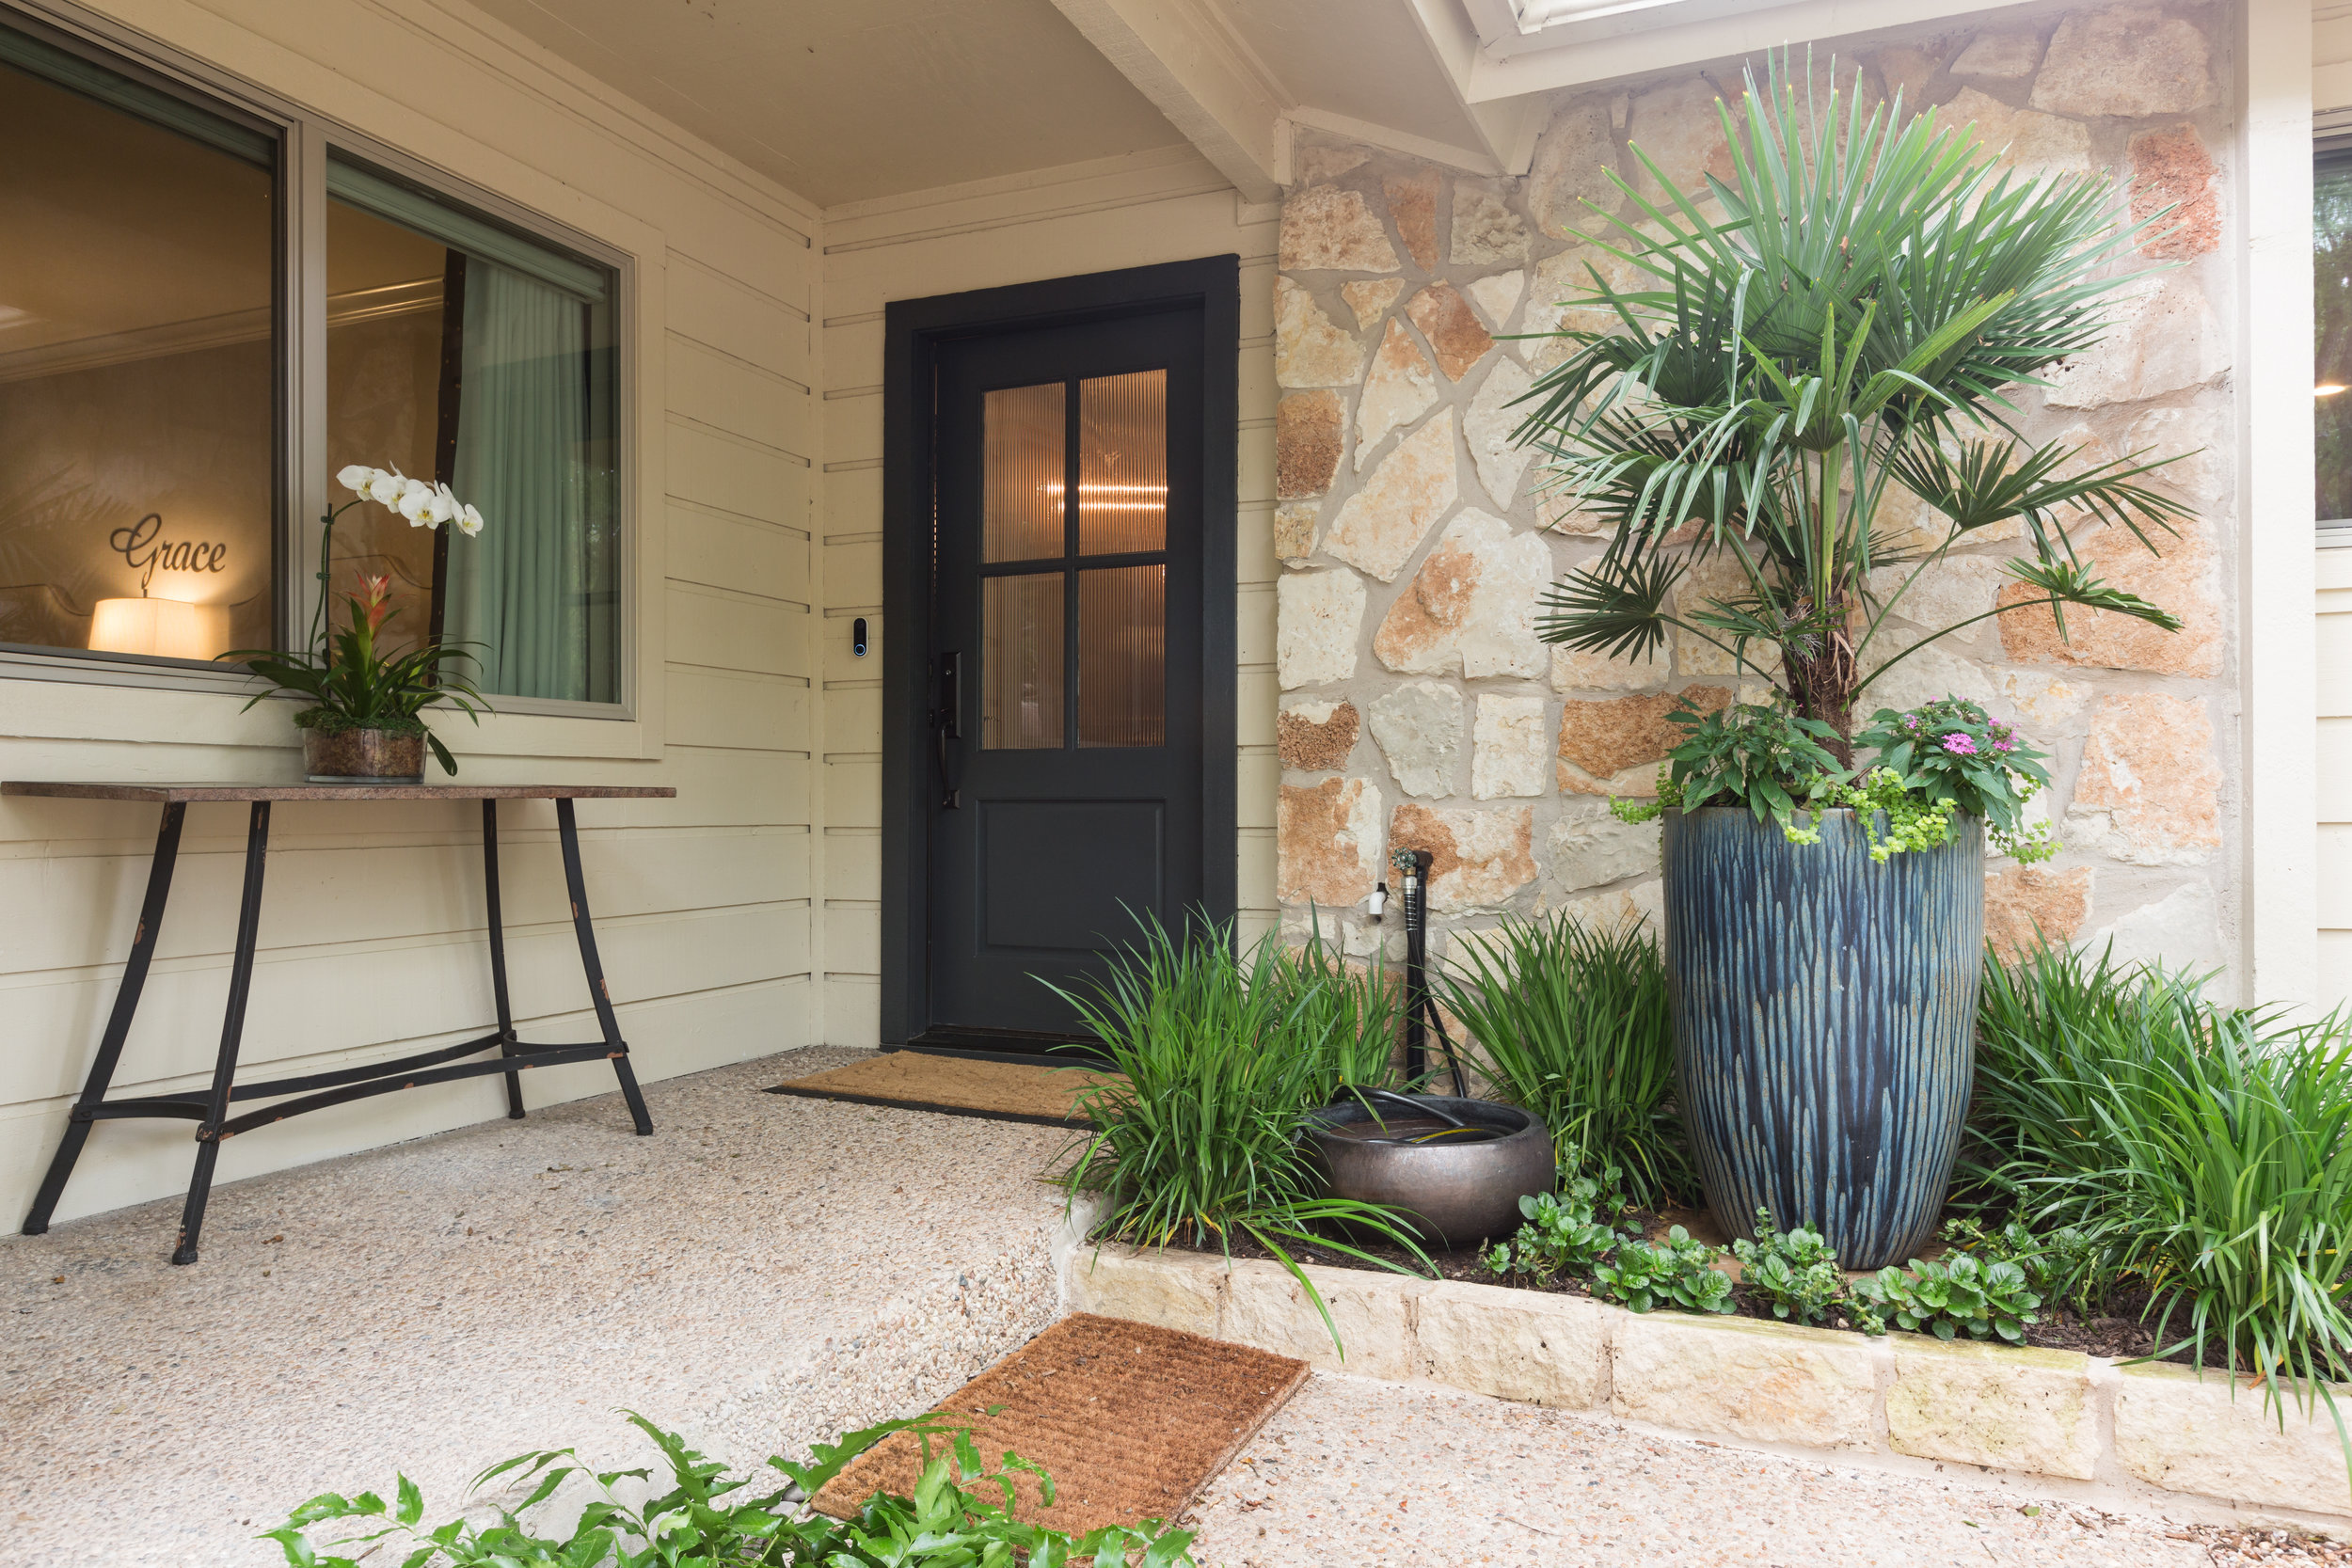 New landscaping exterior of central austin condo remodel project